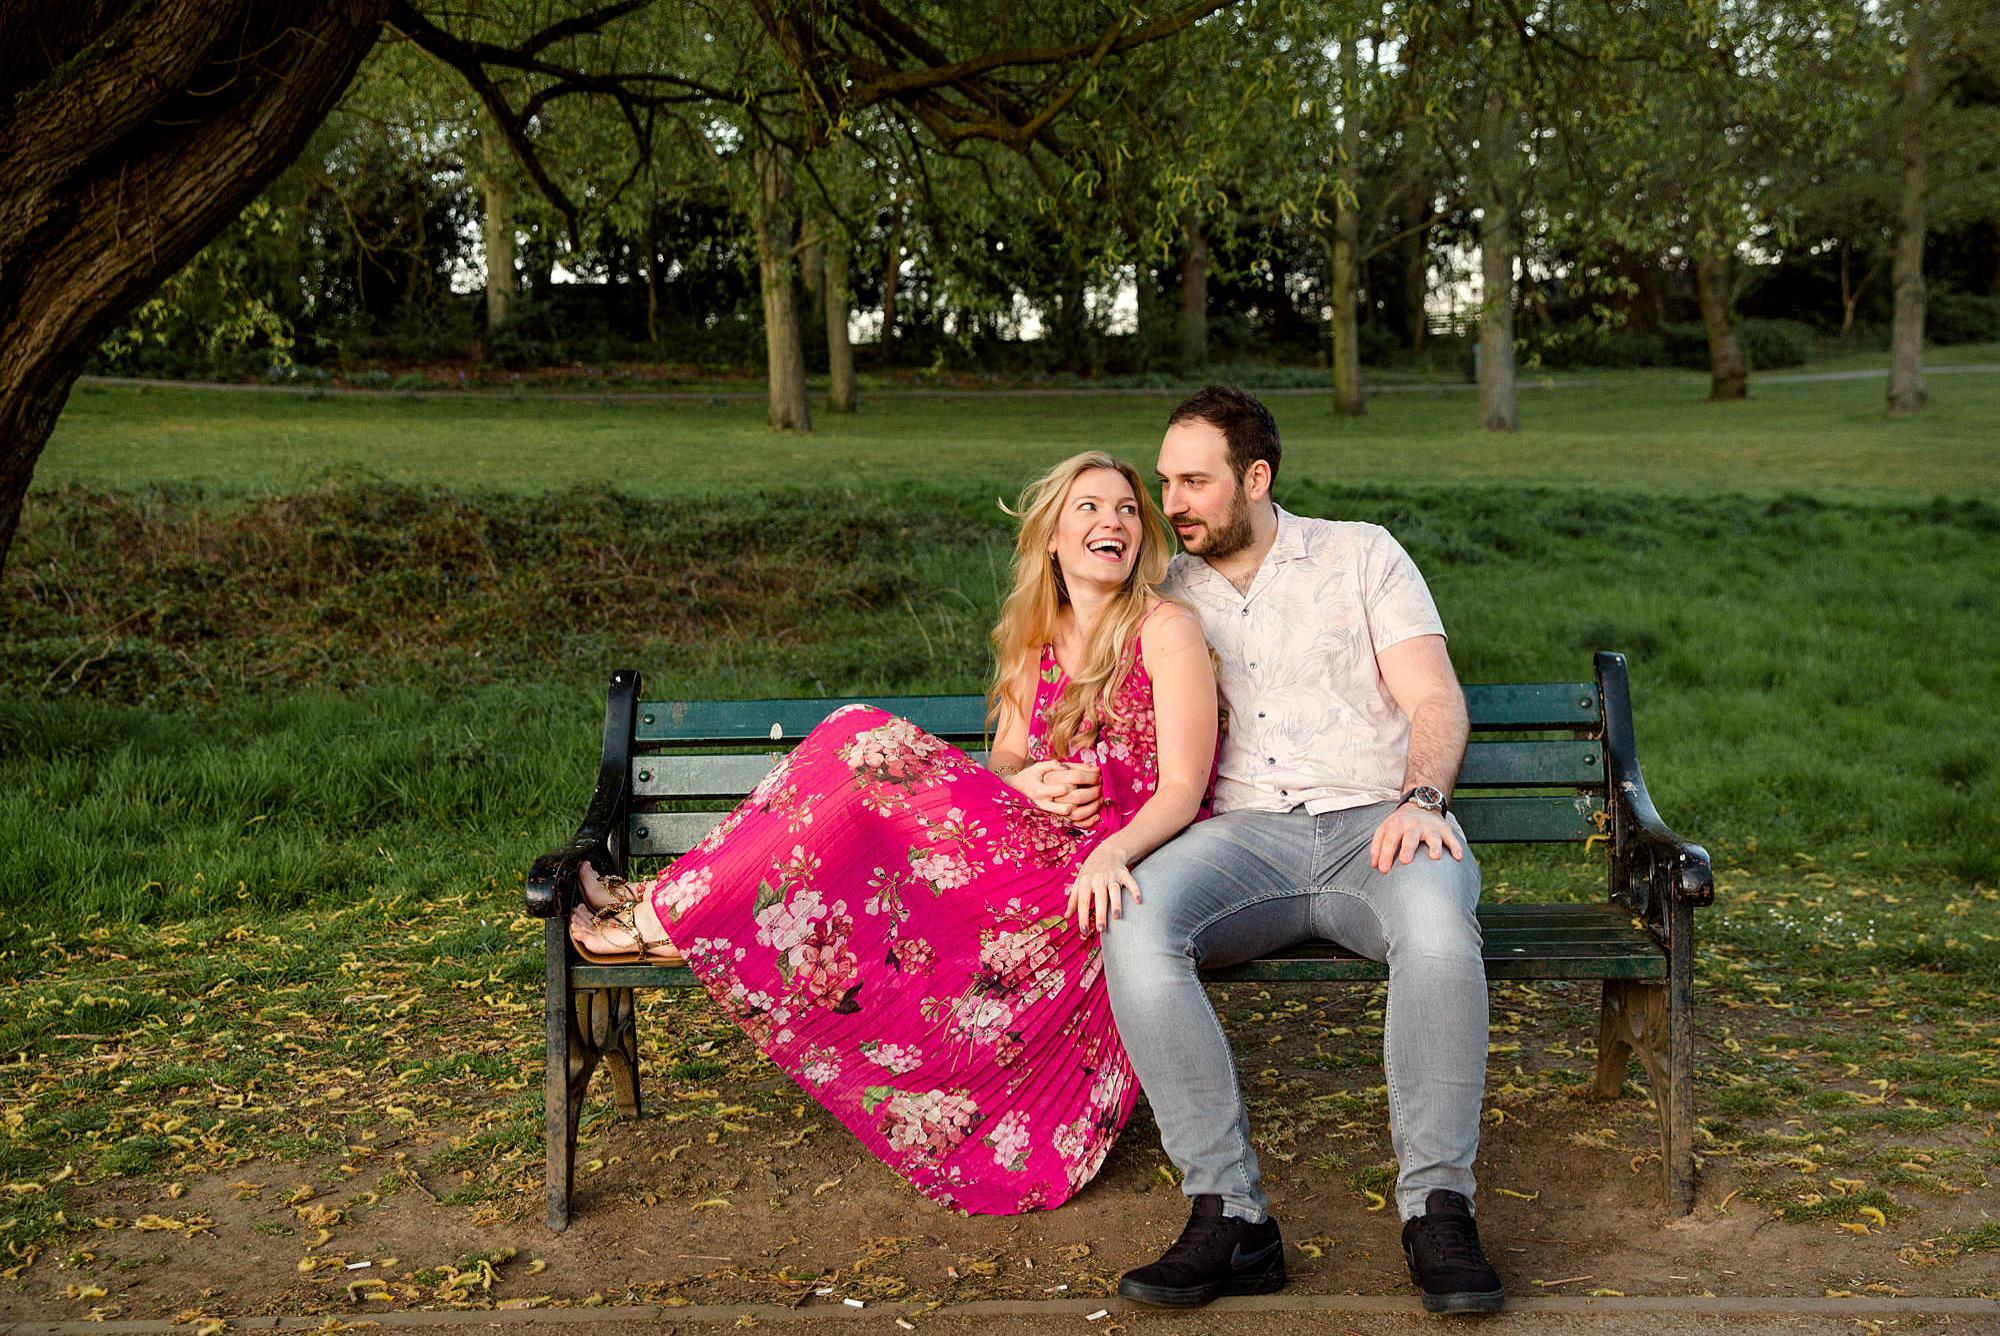 Summer evening engagement shoot couple laugh together on bench